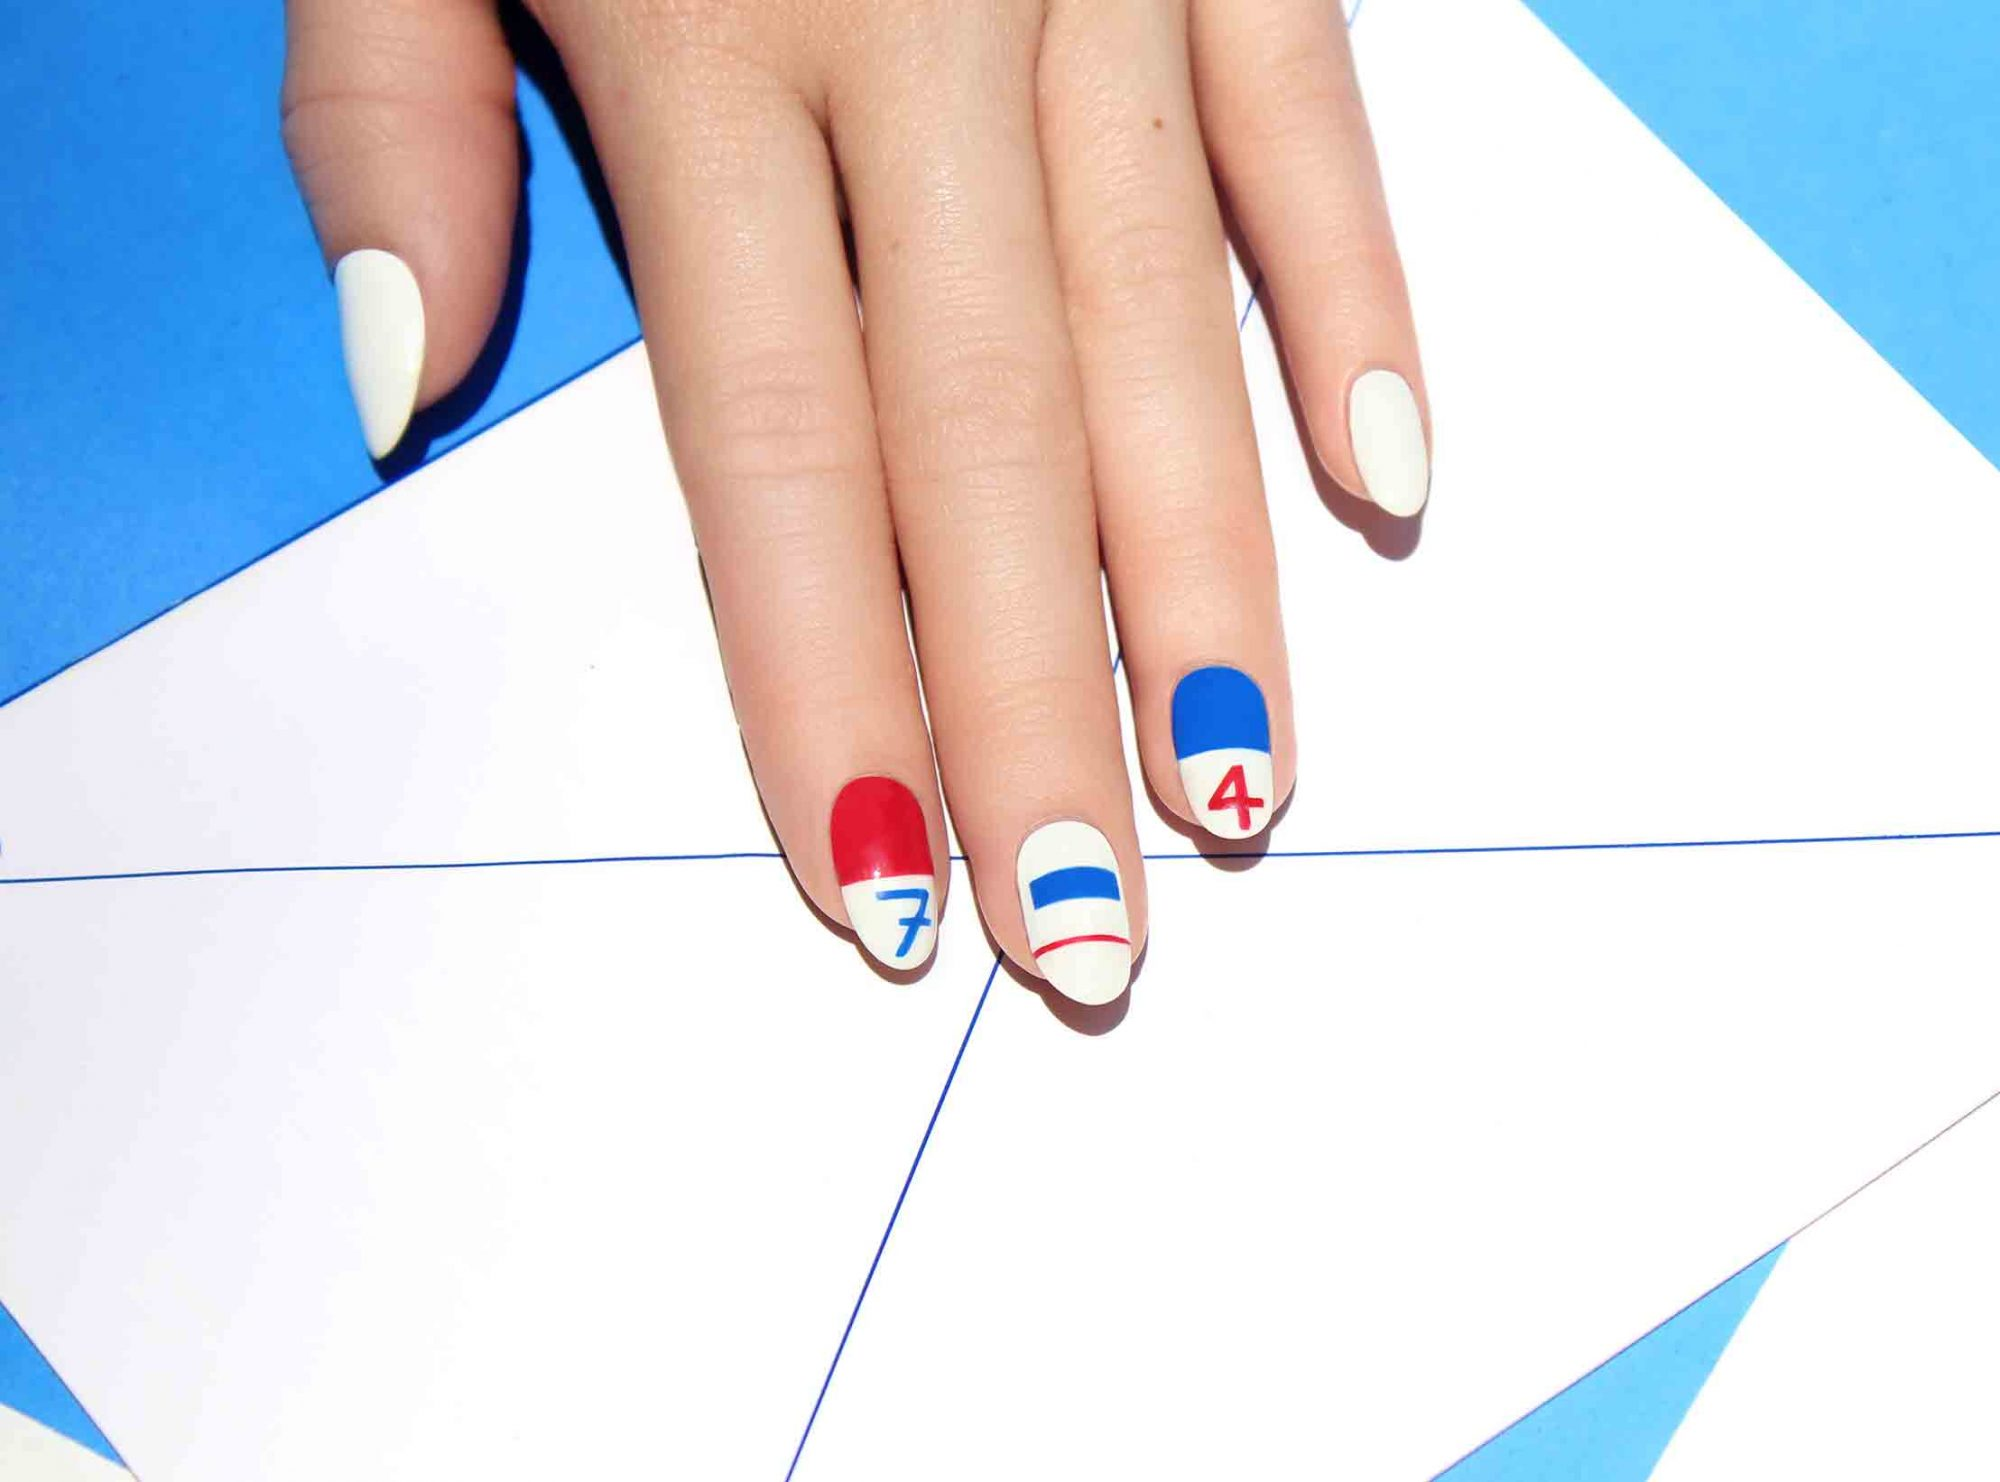 See Exactly How to Nail This Festive Fourth of July Manicure